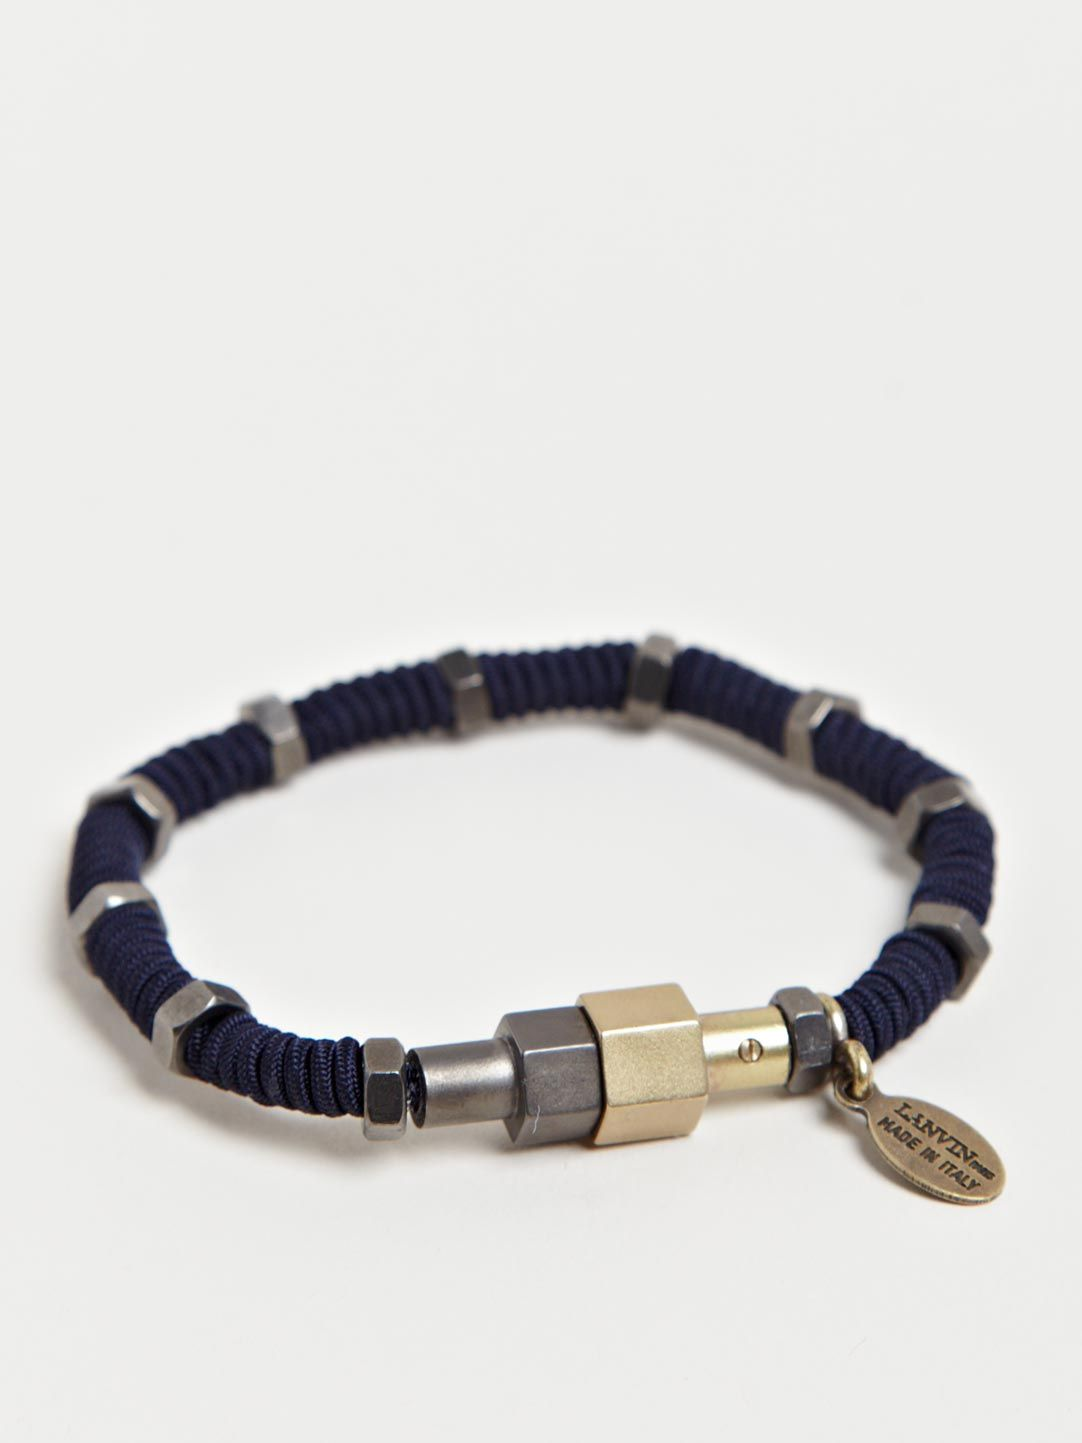 Lanvin Mens Bolt Bracelet Cool Bracelets Men Jewelry Jewelery